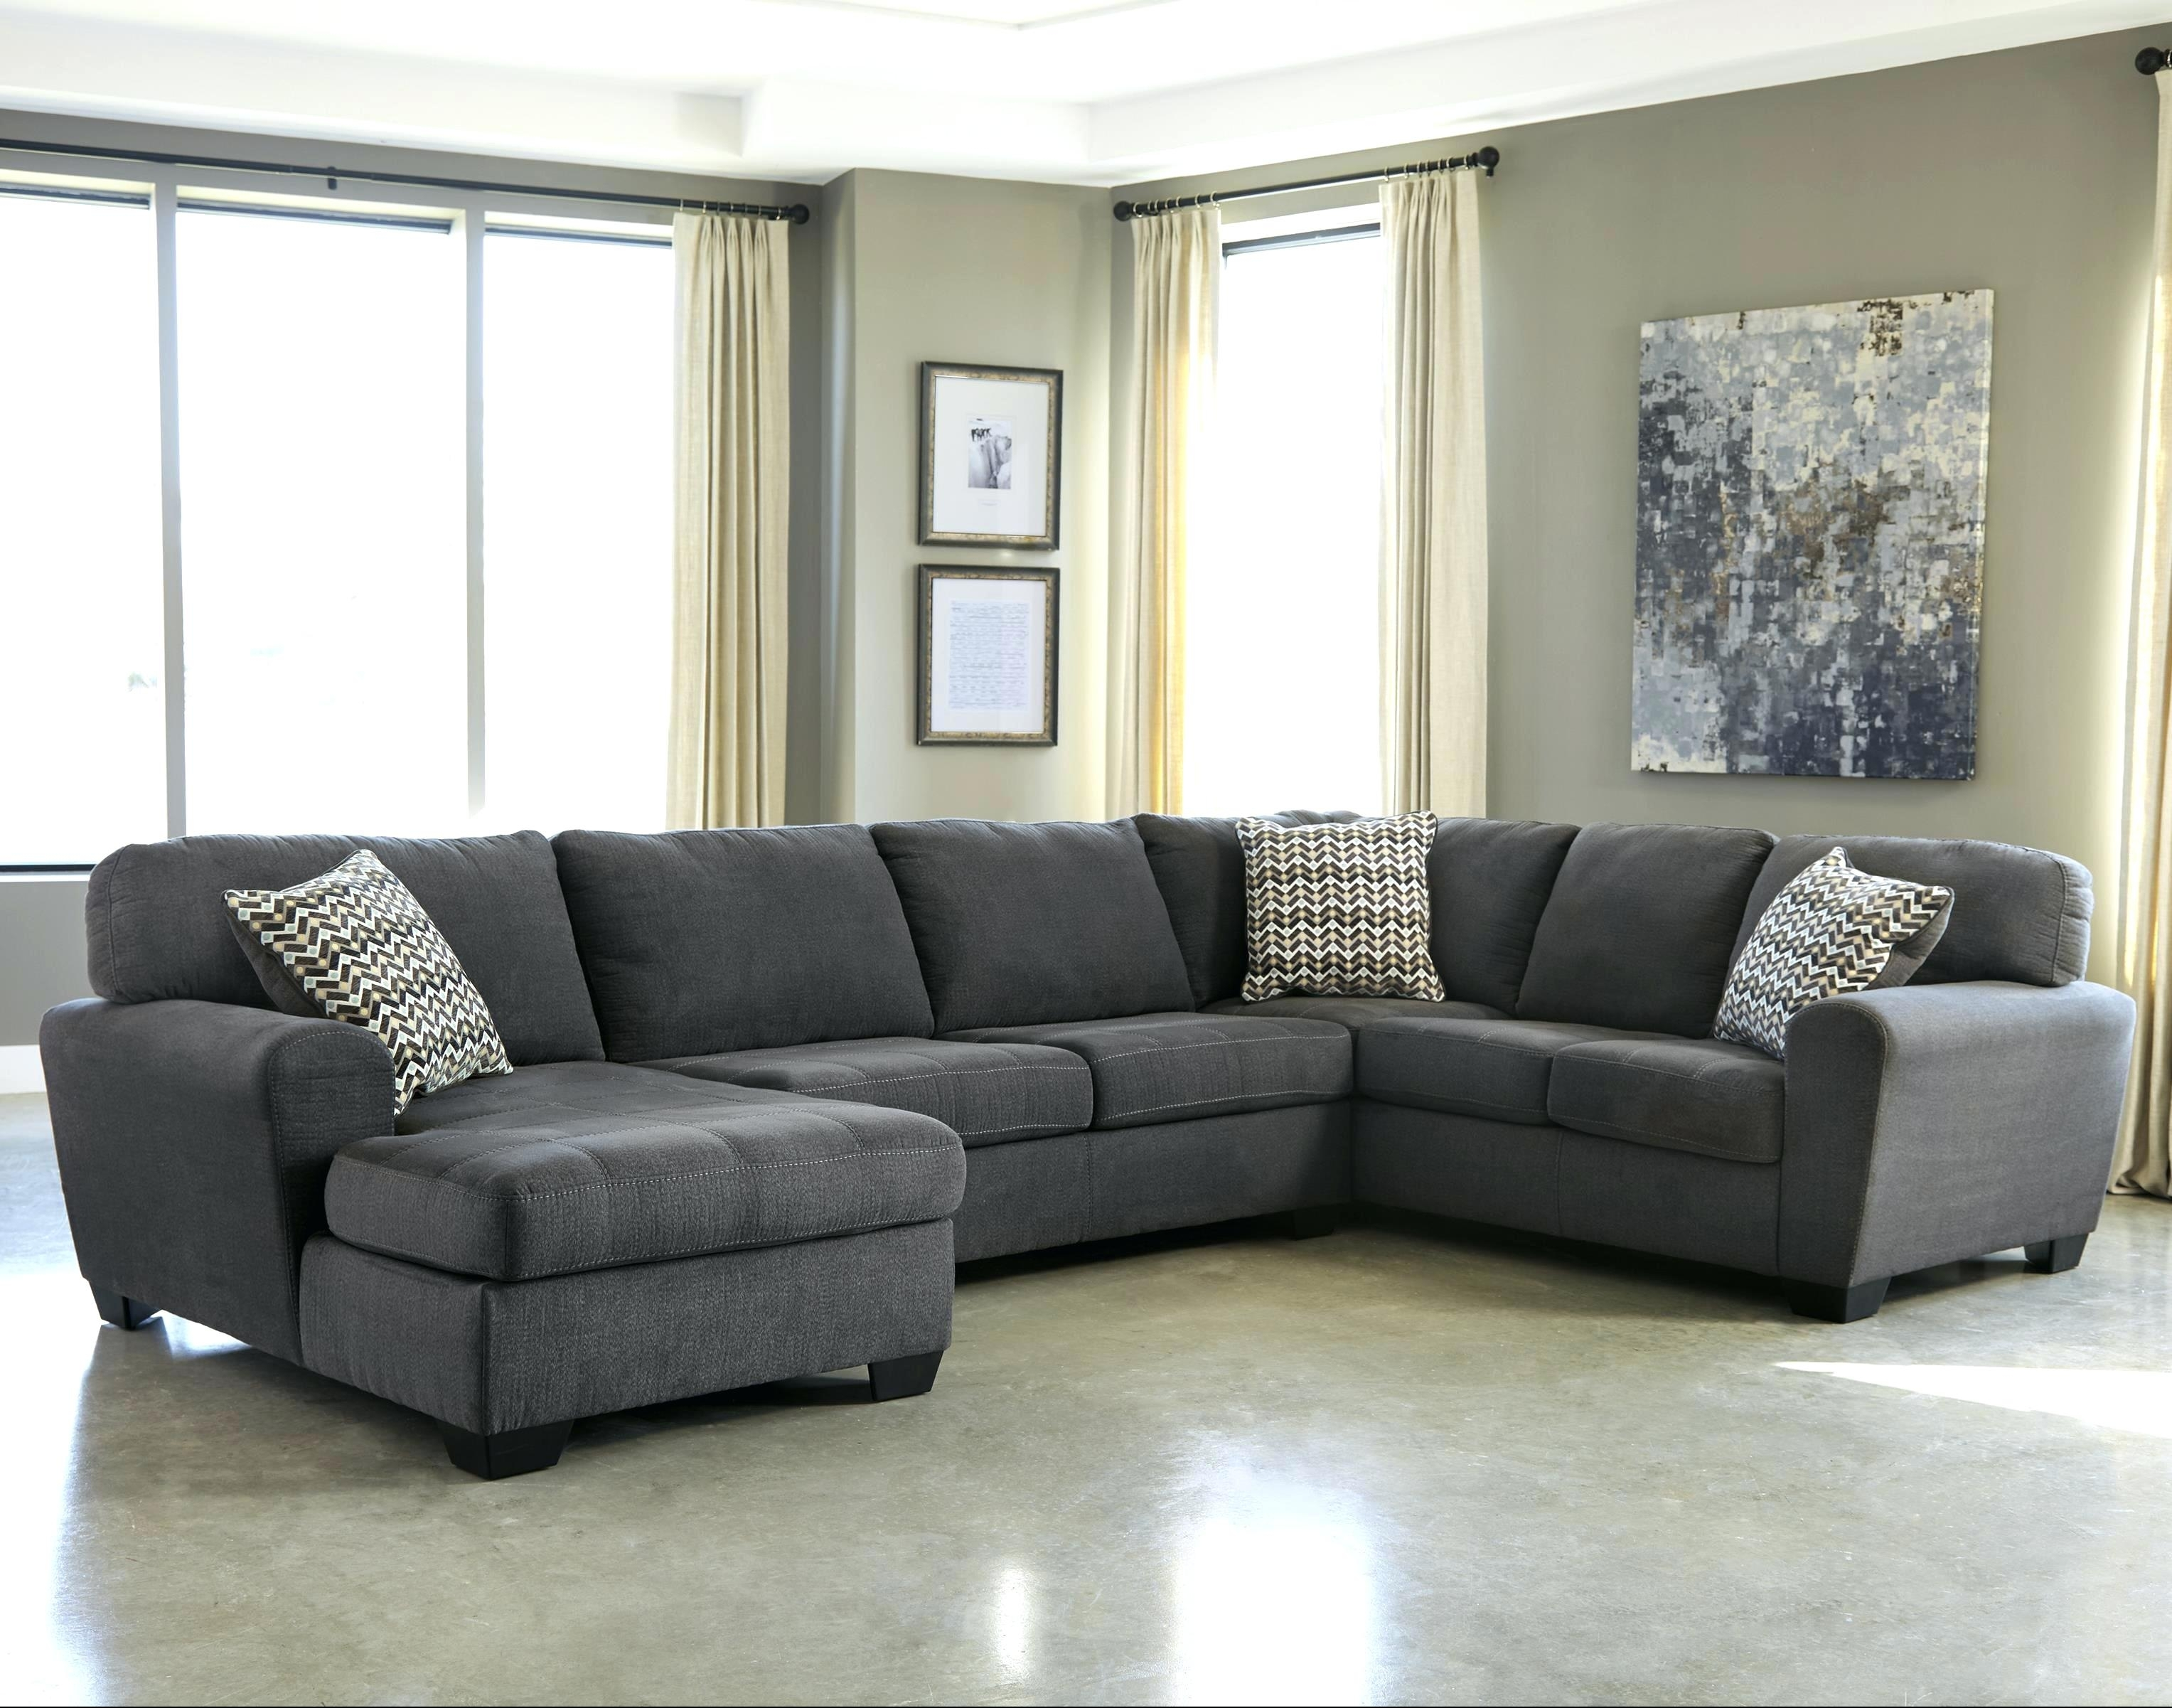 3 Piece Sectional Haven Blue Steel 3 Piece Sectional 3 Pc Reclining Inside Haven 3 Piece Sectionals (Photo 22 of 32)